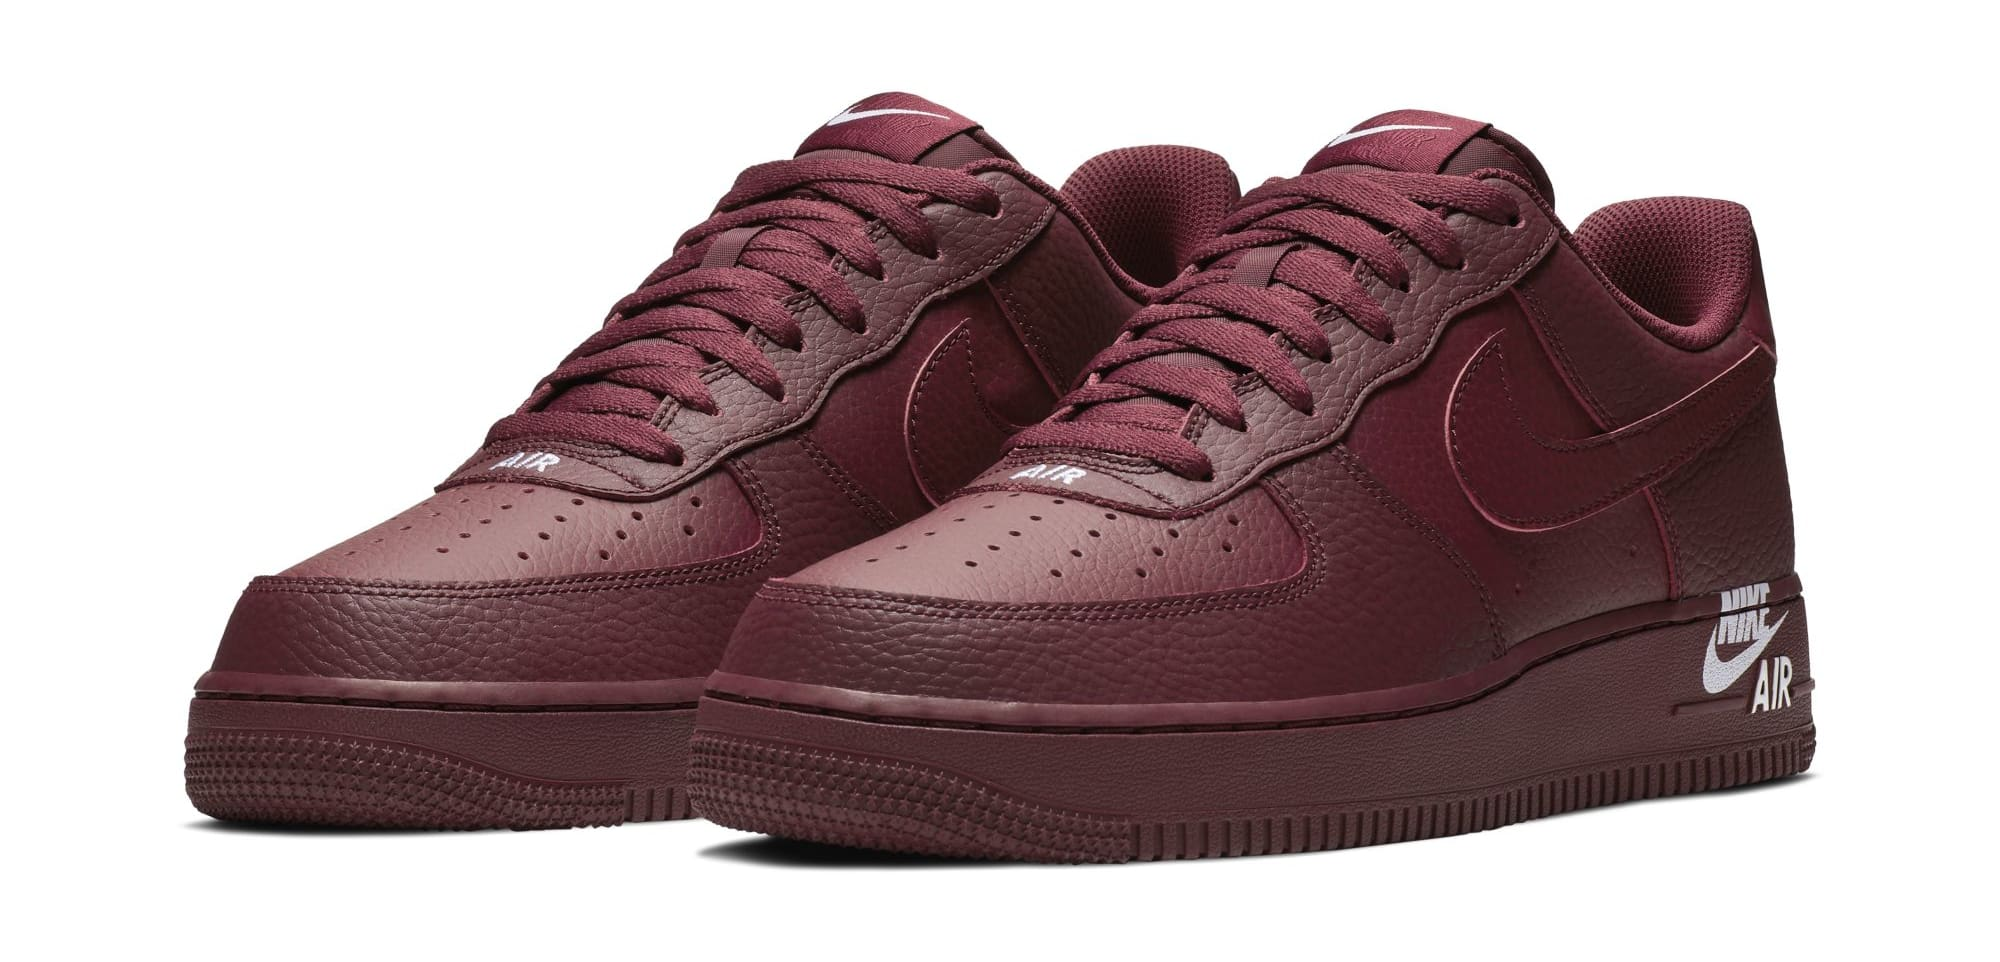 Stamp Detailing Arrives On The Nike Air Force 1